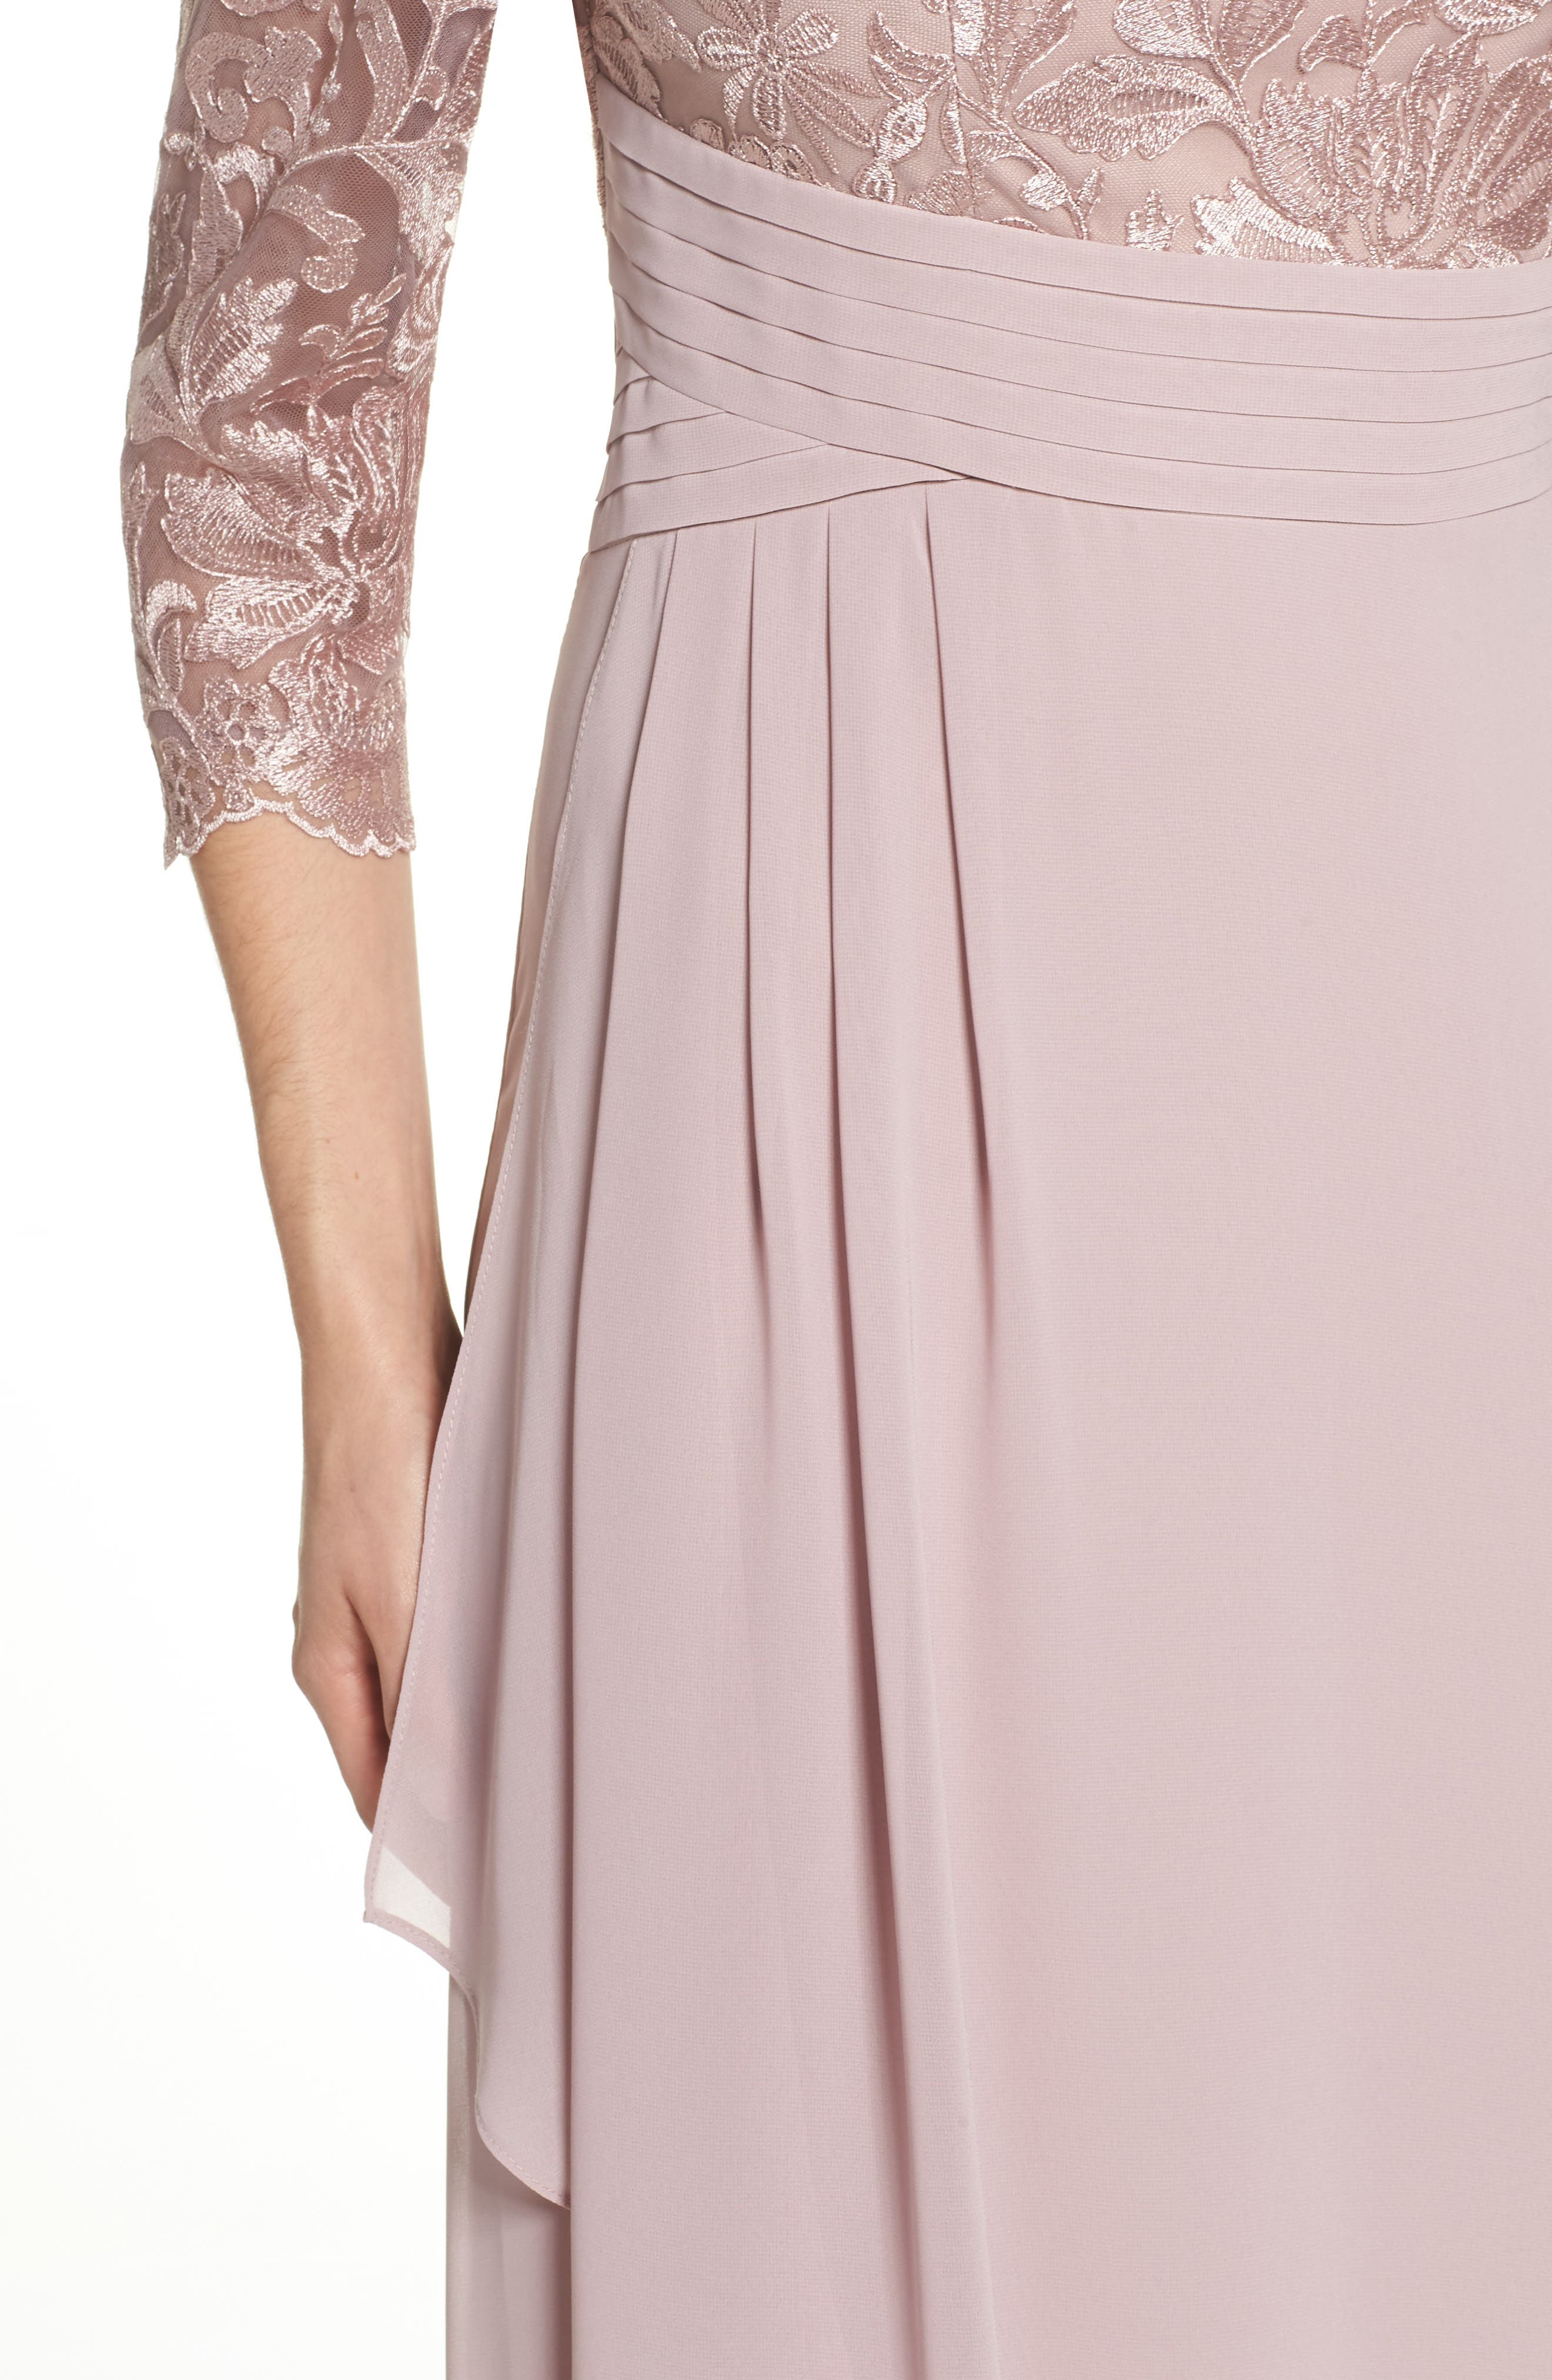 ALEX EVENINGS, Embroidered A-Line Gown, Alternate thumbnail 4, color, 695